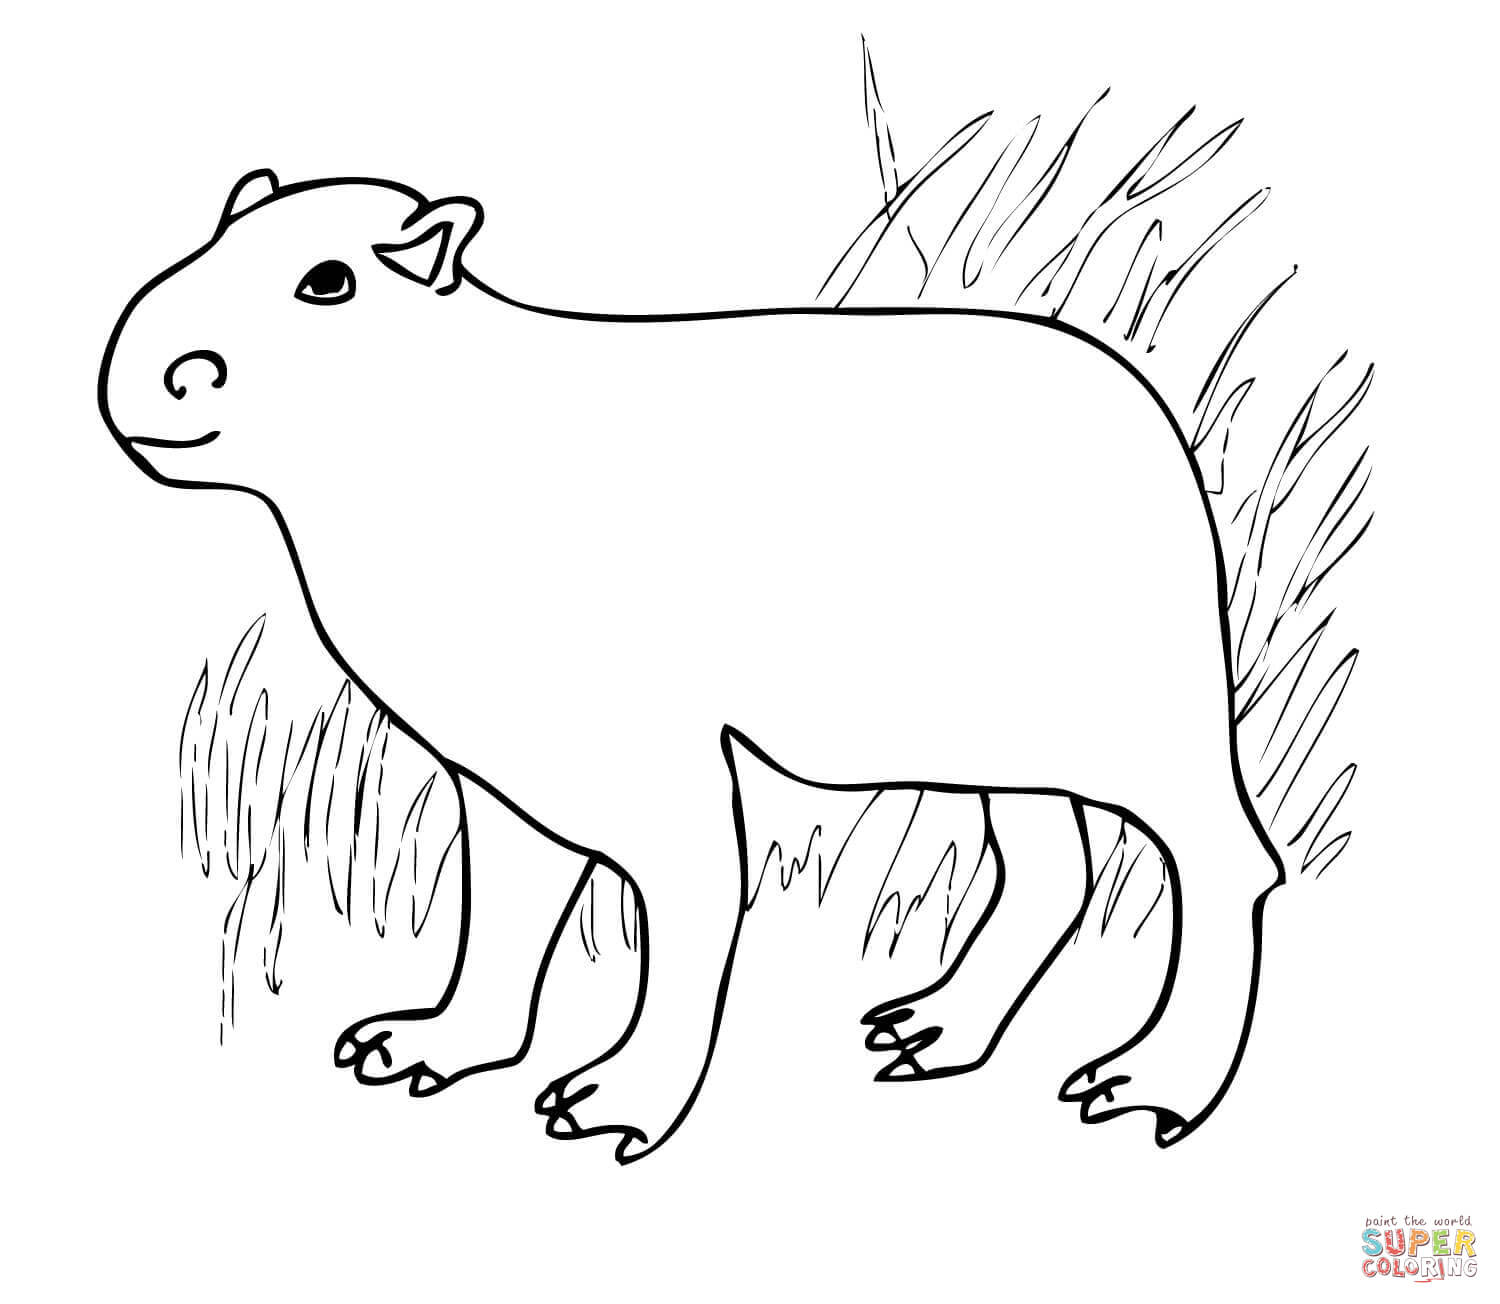 Capybara from South America coloring page | Free Printable ...